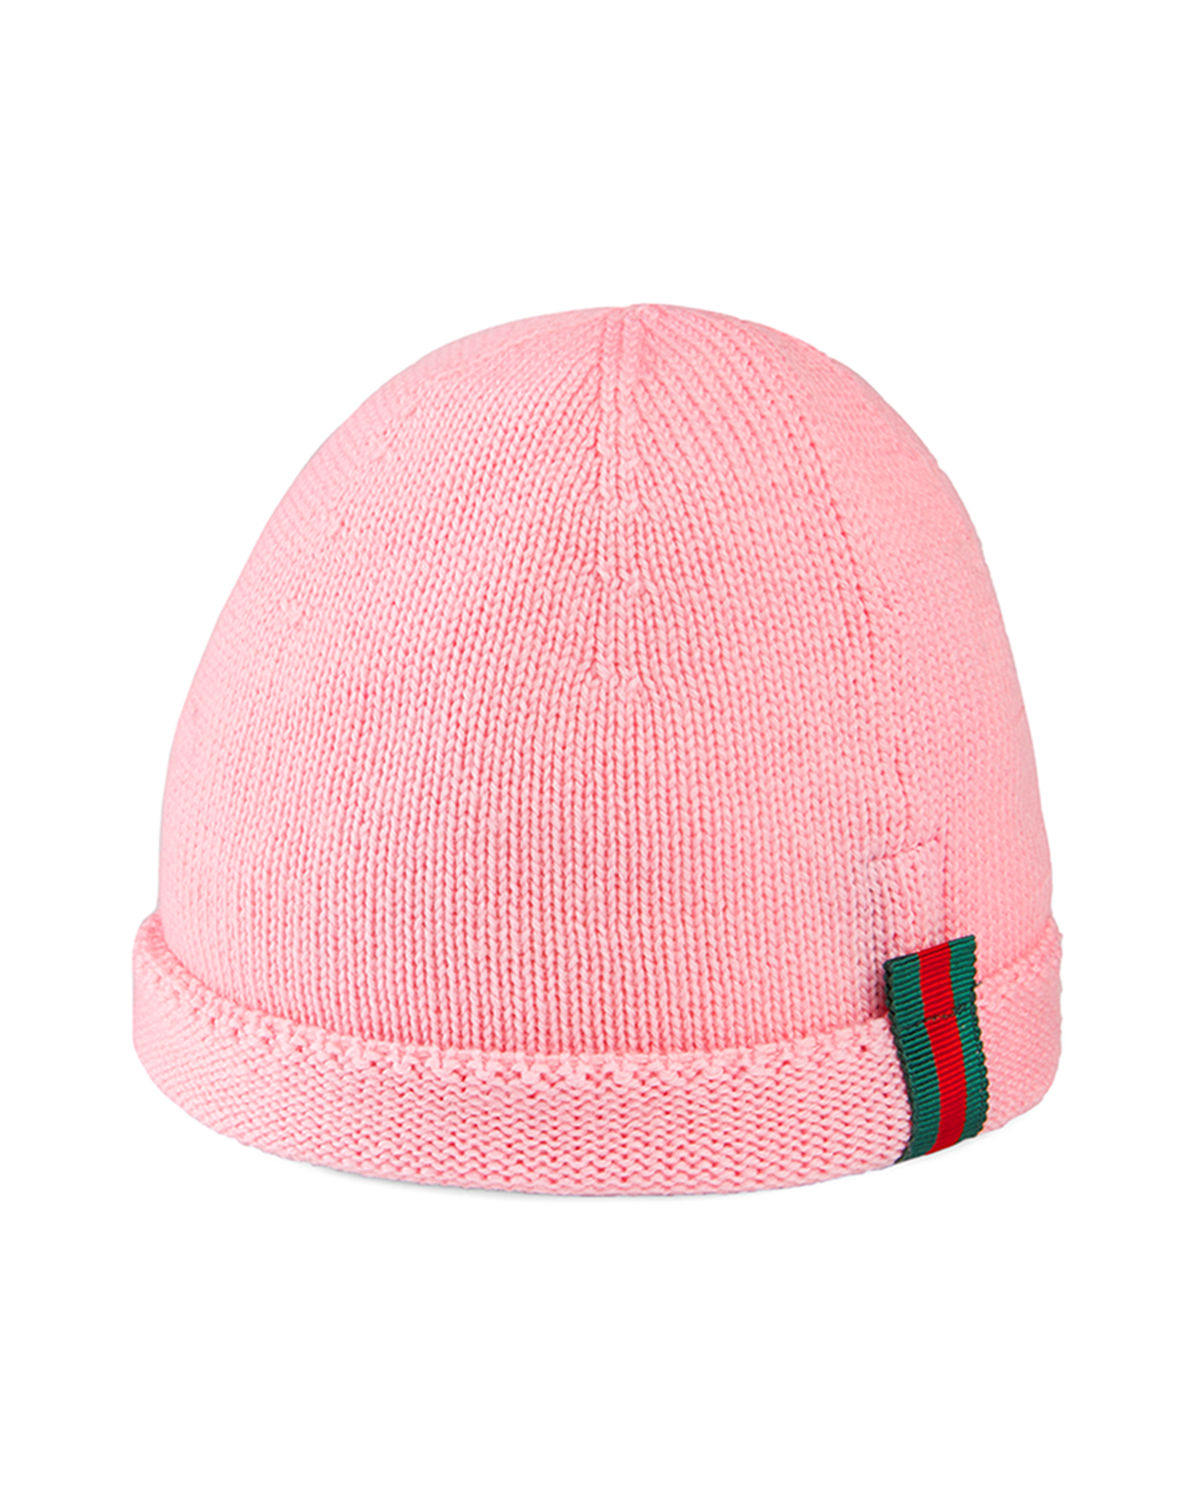 Kids Knit Web Trim Beanie Hat